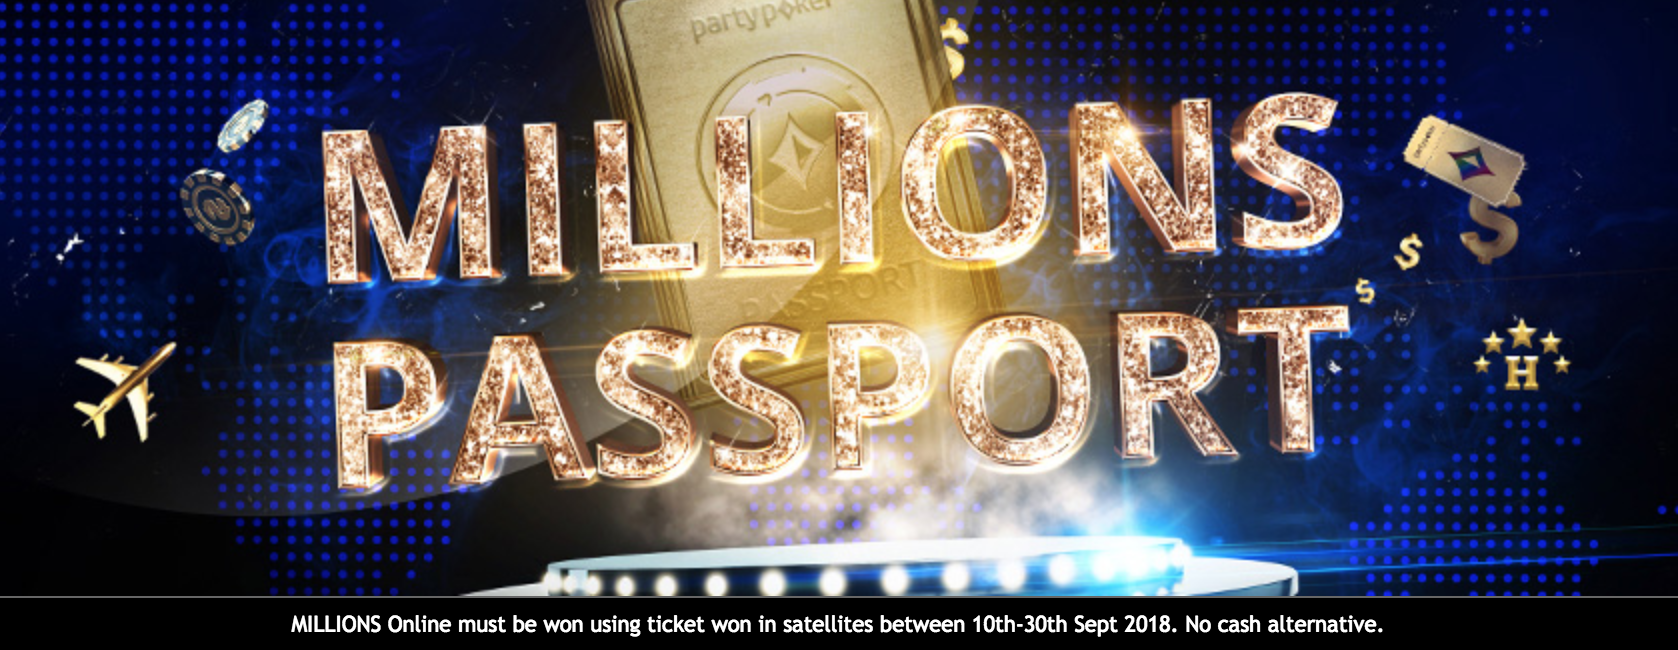 partypoker to give One Lucky Player a $500,000 MILLIONS PASSPORT